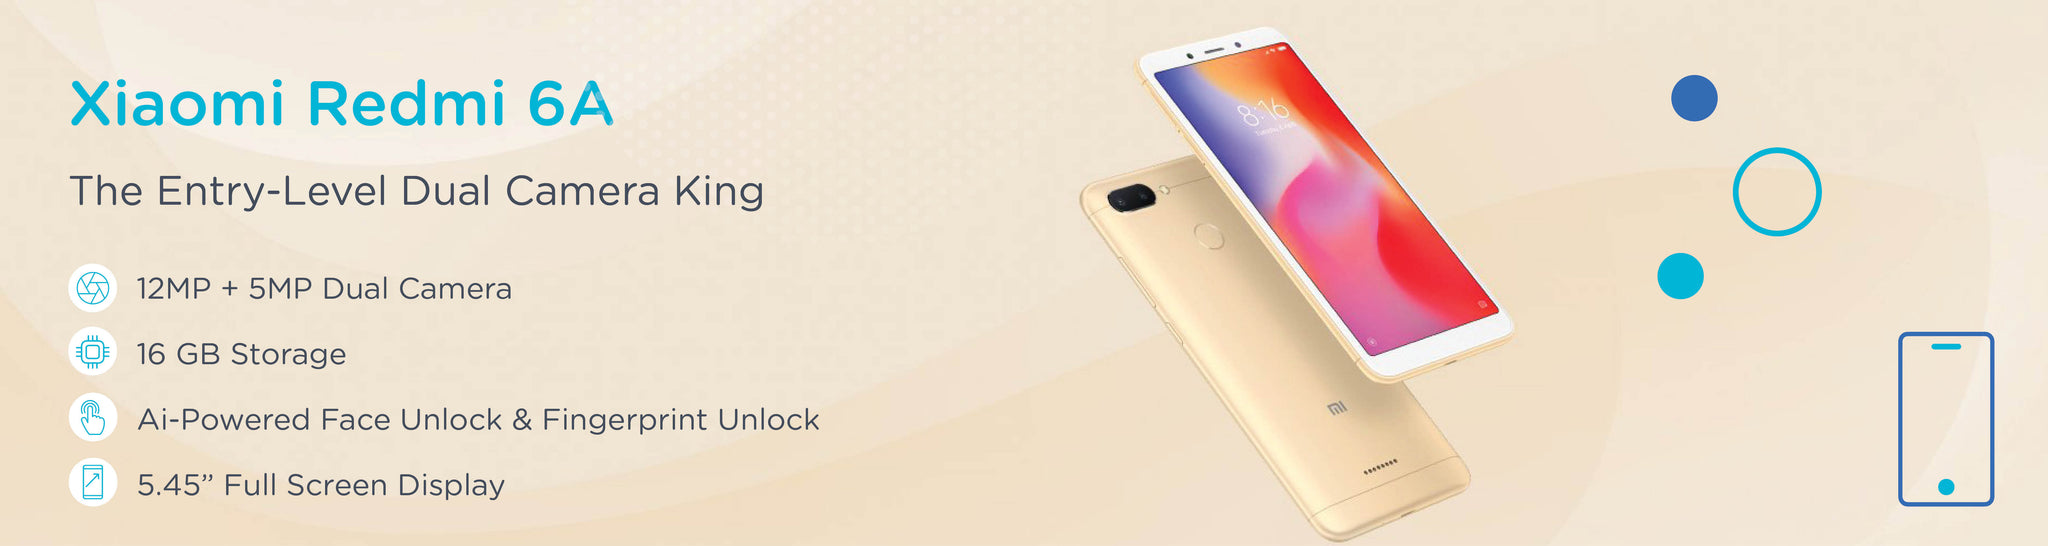 Xiaomi New Phones Tagged Model Redmi 6a Wireless 2 16gb Gold